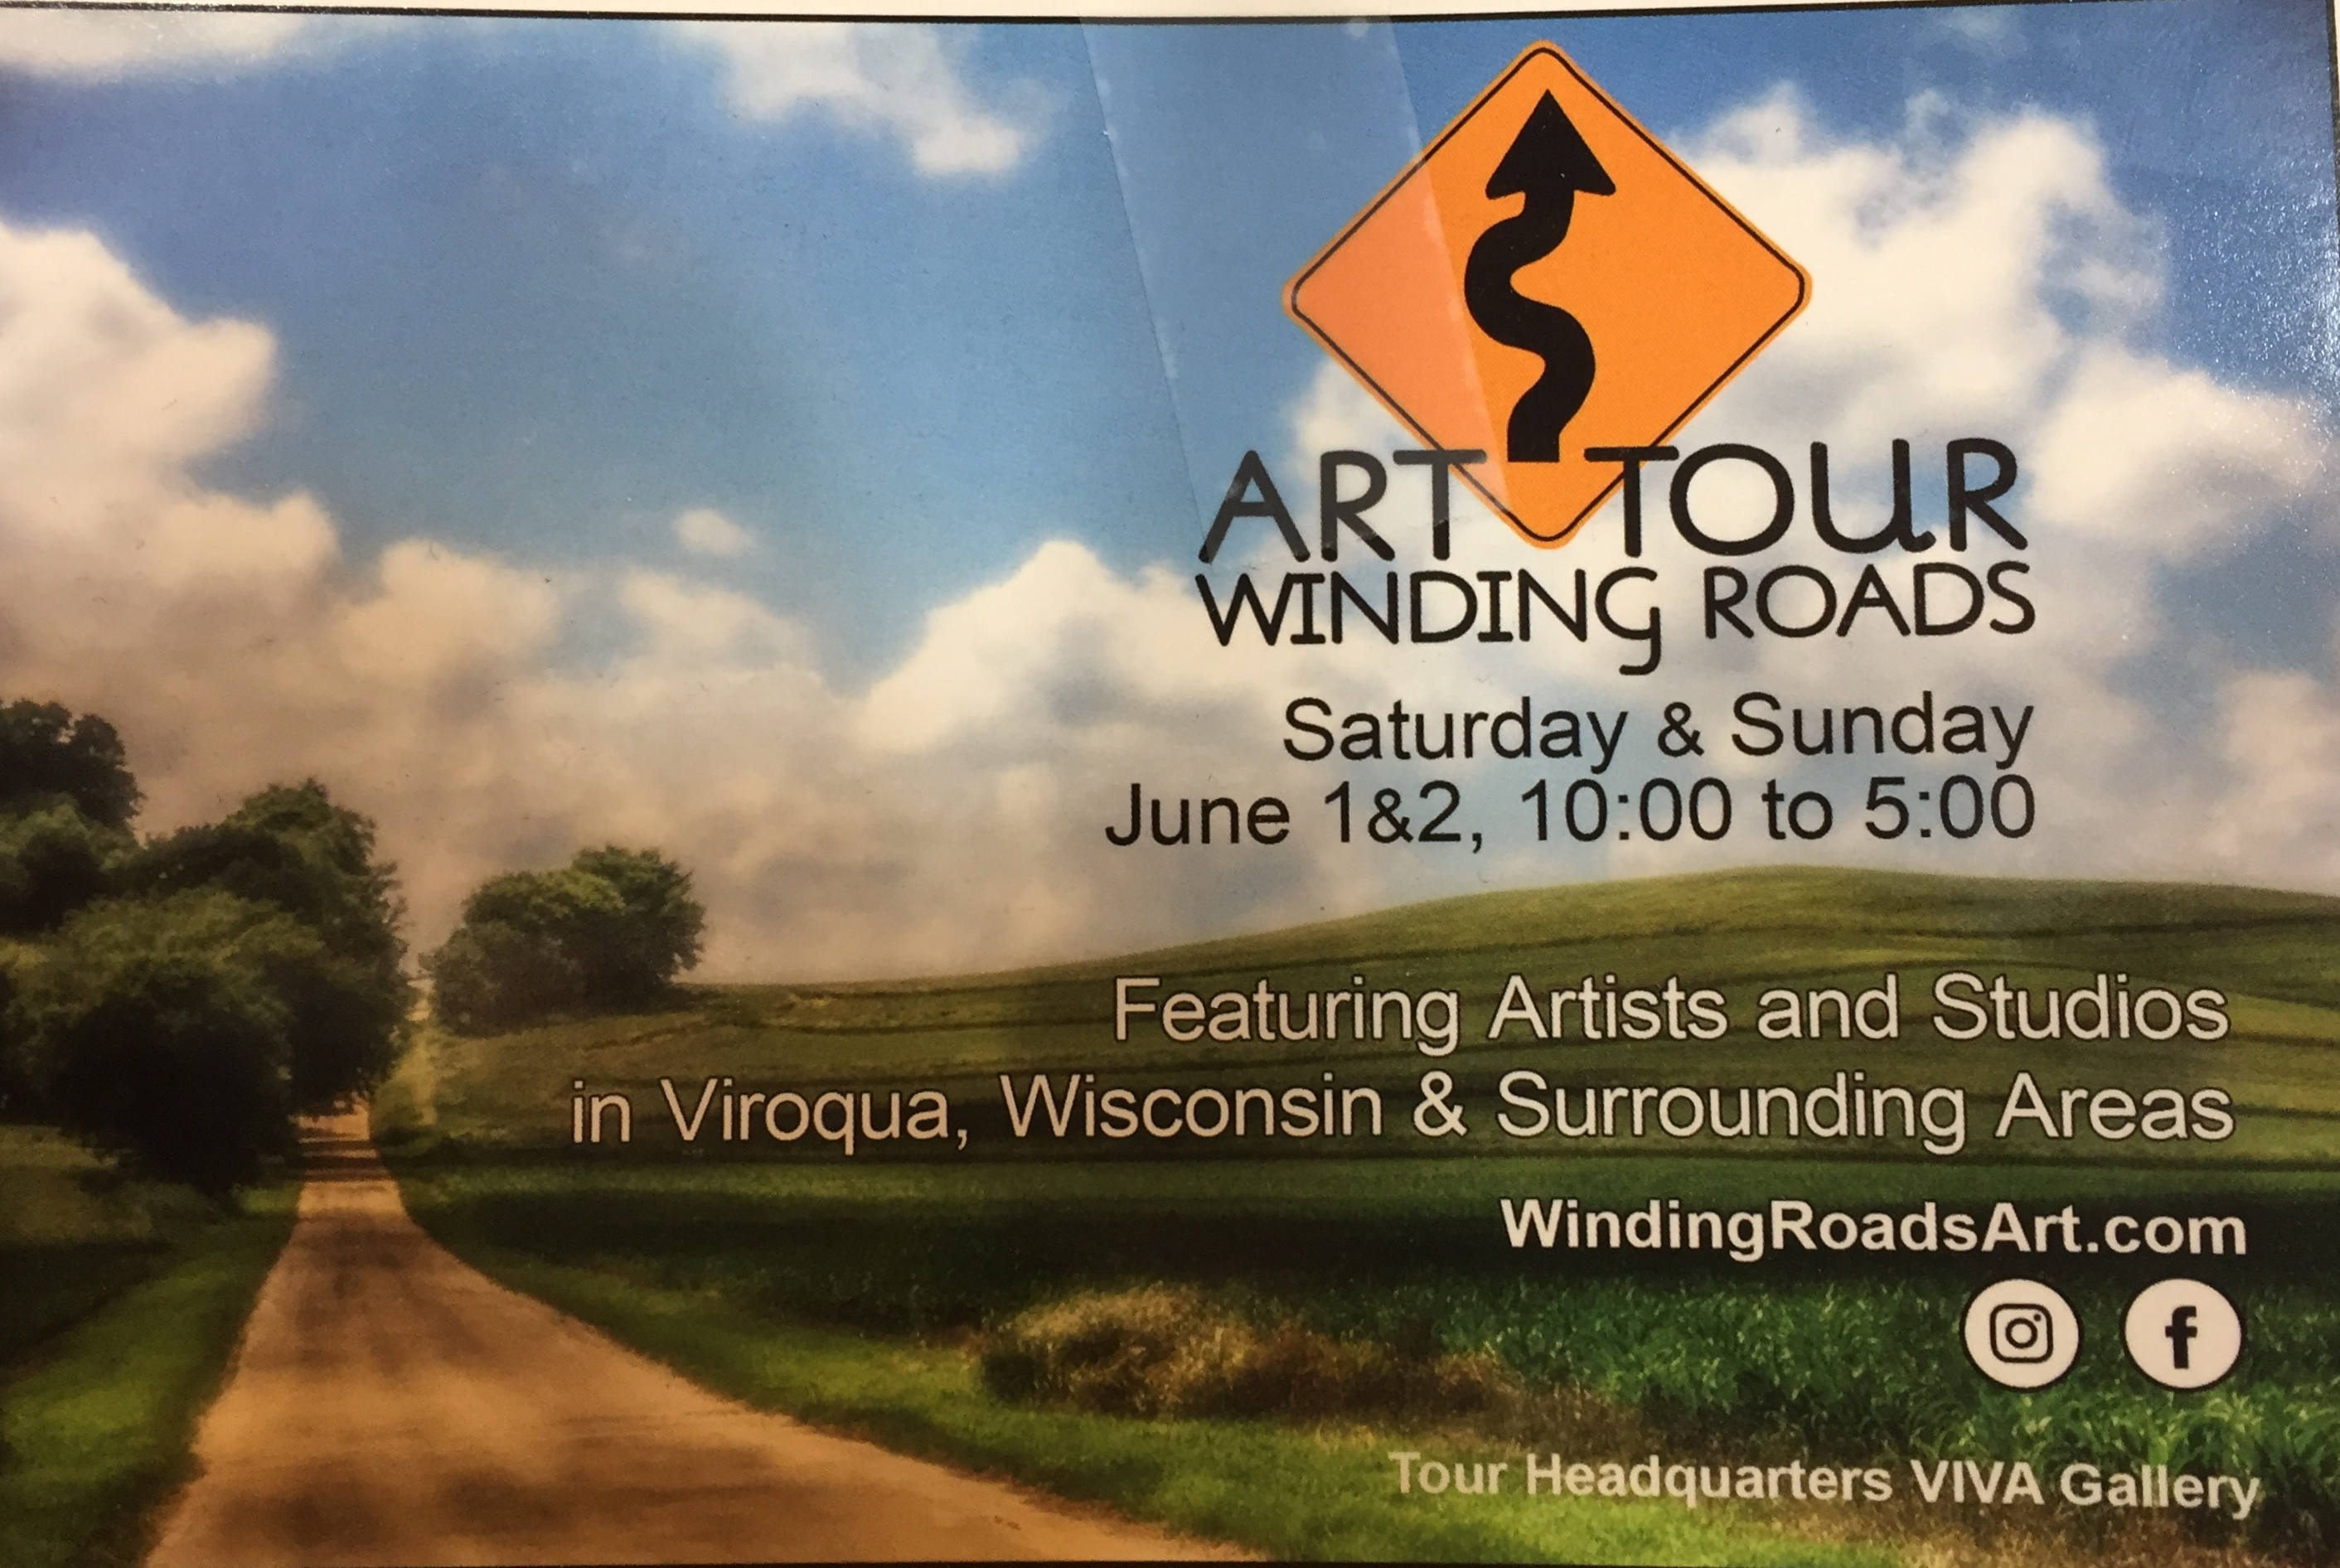 Winding Roads Arts Tour